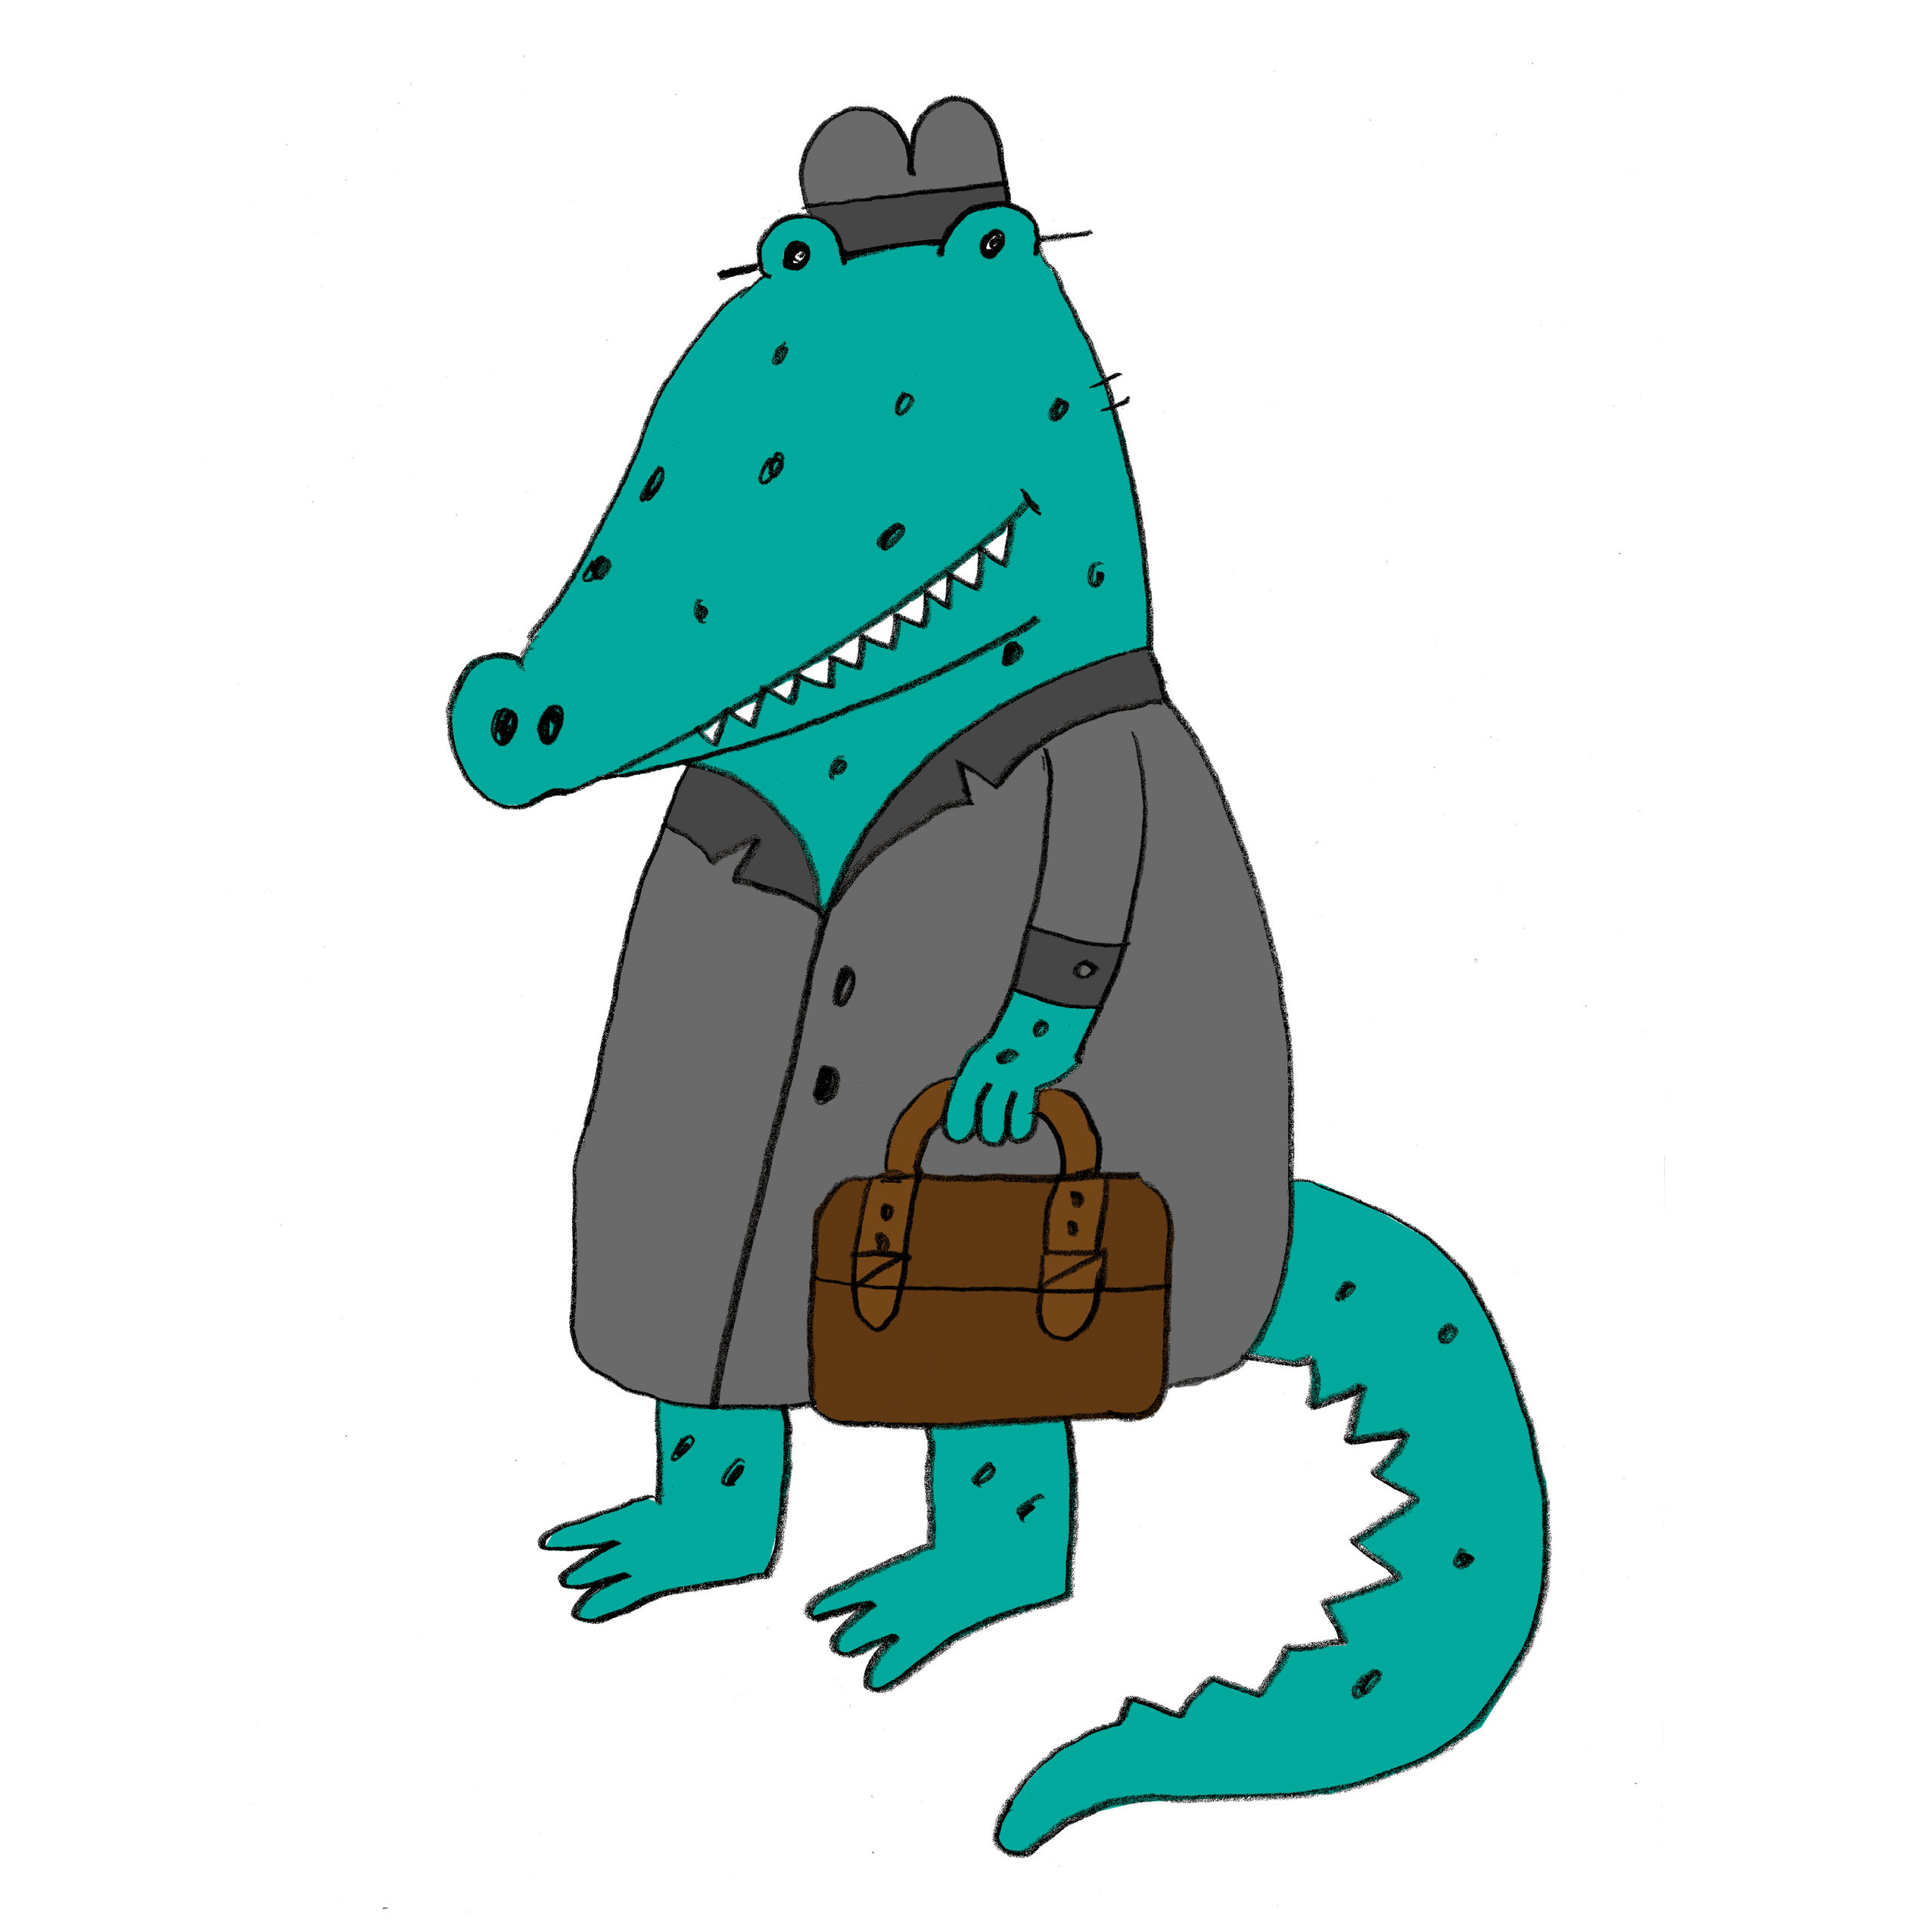 Pen illustration of the crocodile who is wearing gray raincoat, gray hat and holding an brown briefcase